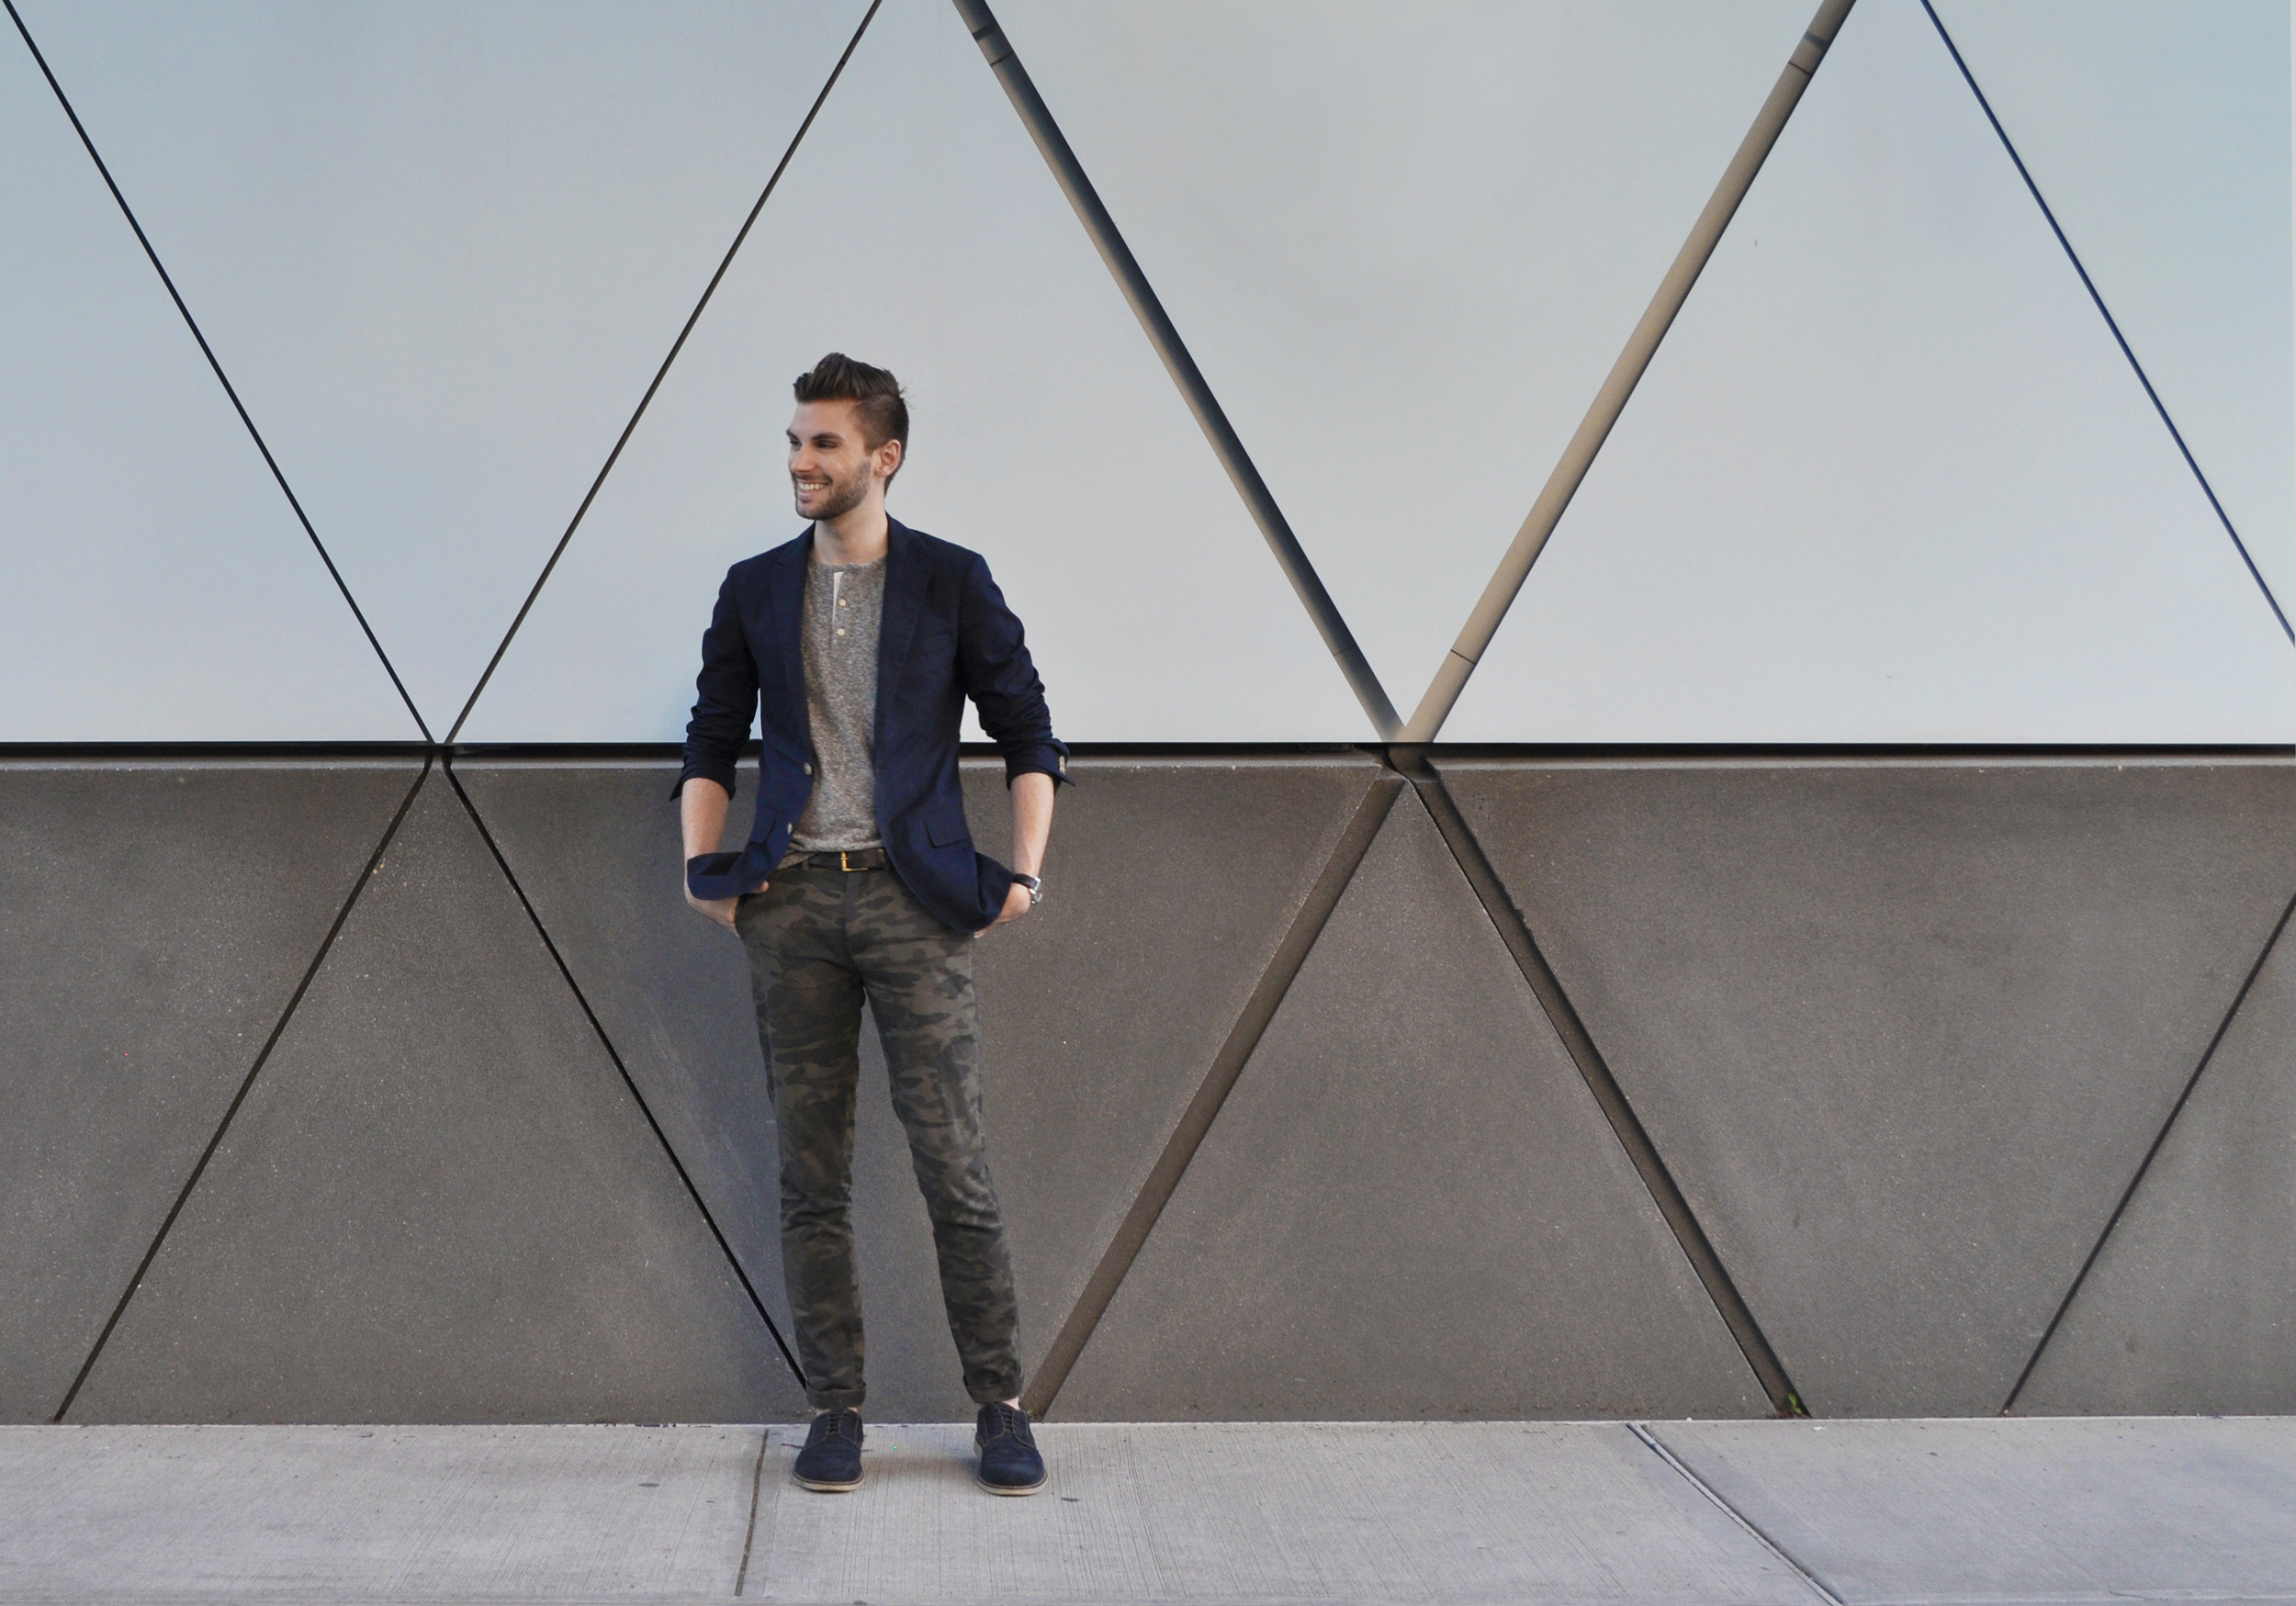 Matching camo chinos with a blazer strikes a perfect balance between high and low. It's a little rugged yet overtly street-smart. It equips you for every situation (meetings, brunch, cocktails, party etc.) and pairs well with so many different colors. It's been muggy the last few days so I kept it cool with a lightweight marled henley and pushed up my sleeves for a bit of attitude.  Try lacing your oxfords straight across for a sharper look. It's particularly nice with wingtips. There's already so much business going on at the toe, it cleans up the whole look a bit more. Keeping with the streamlined look, i threw on my timeless  Burberry  watch. It's classic and goes with everything!  How are you wearing the camo trend these days?   Club Monaco blazer  and  henley  / Banana Republic camo chinos ( similar ) and  oxfords  /  Burberry watch